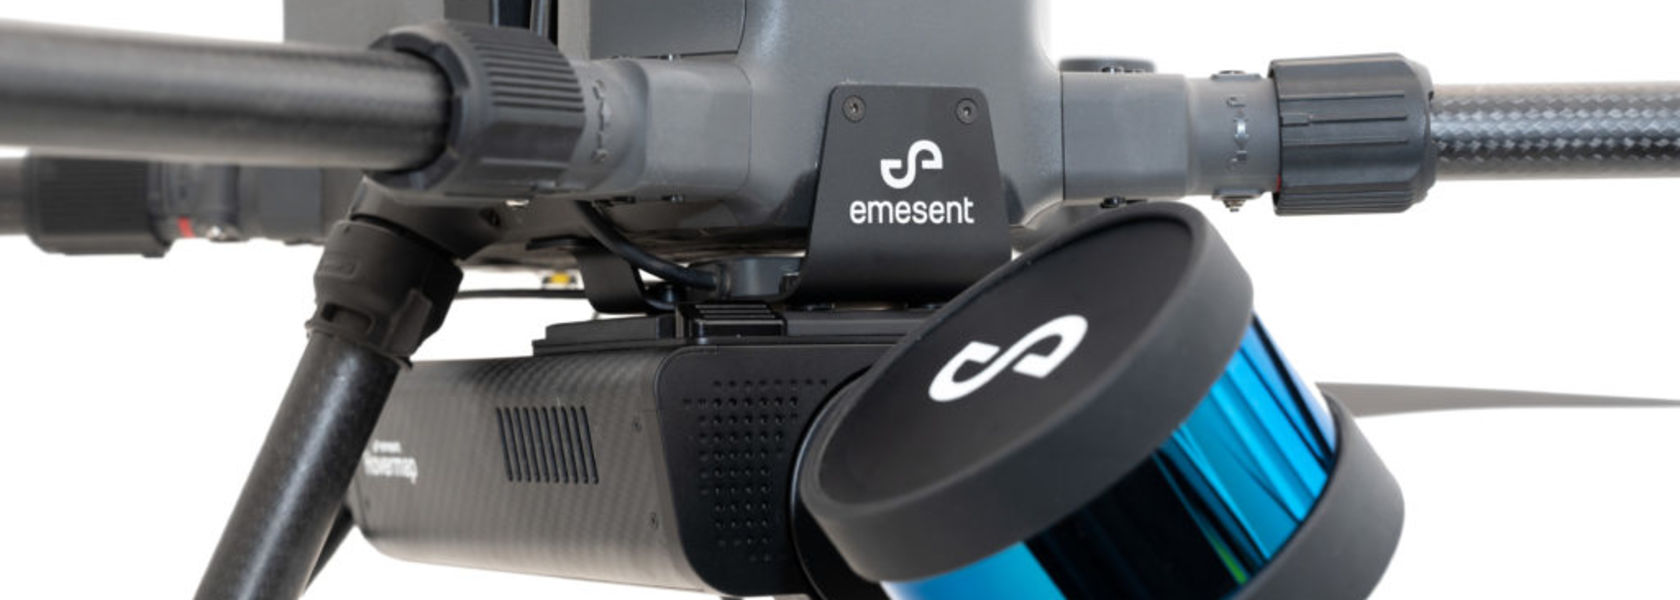 Velodyne Lidar signs sales deal with Emesent